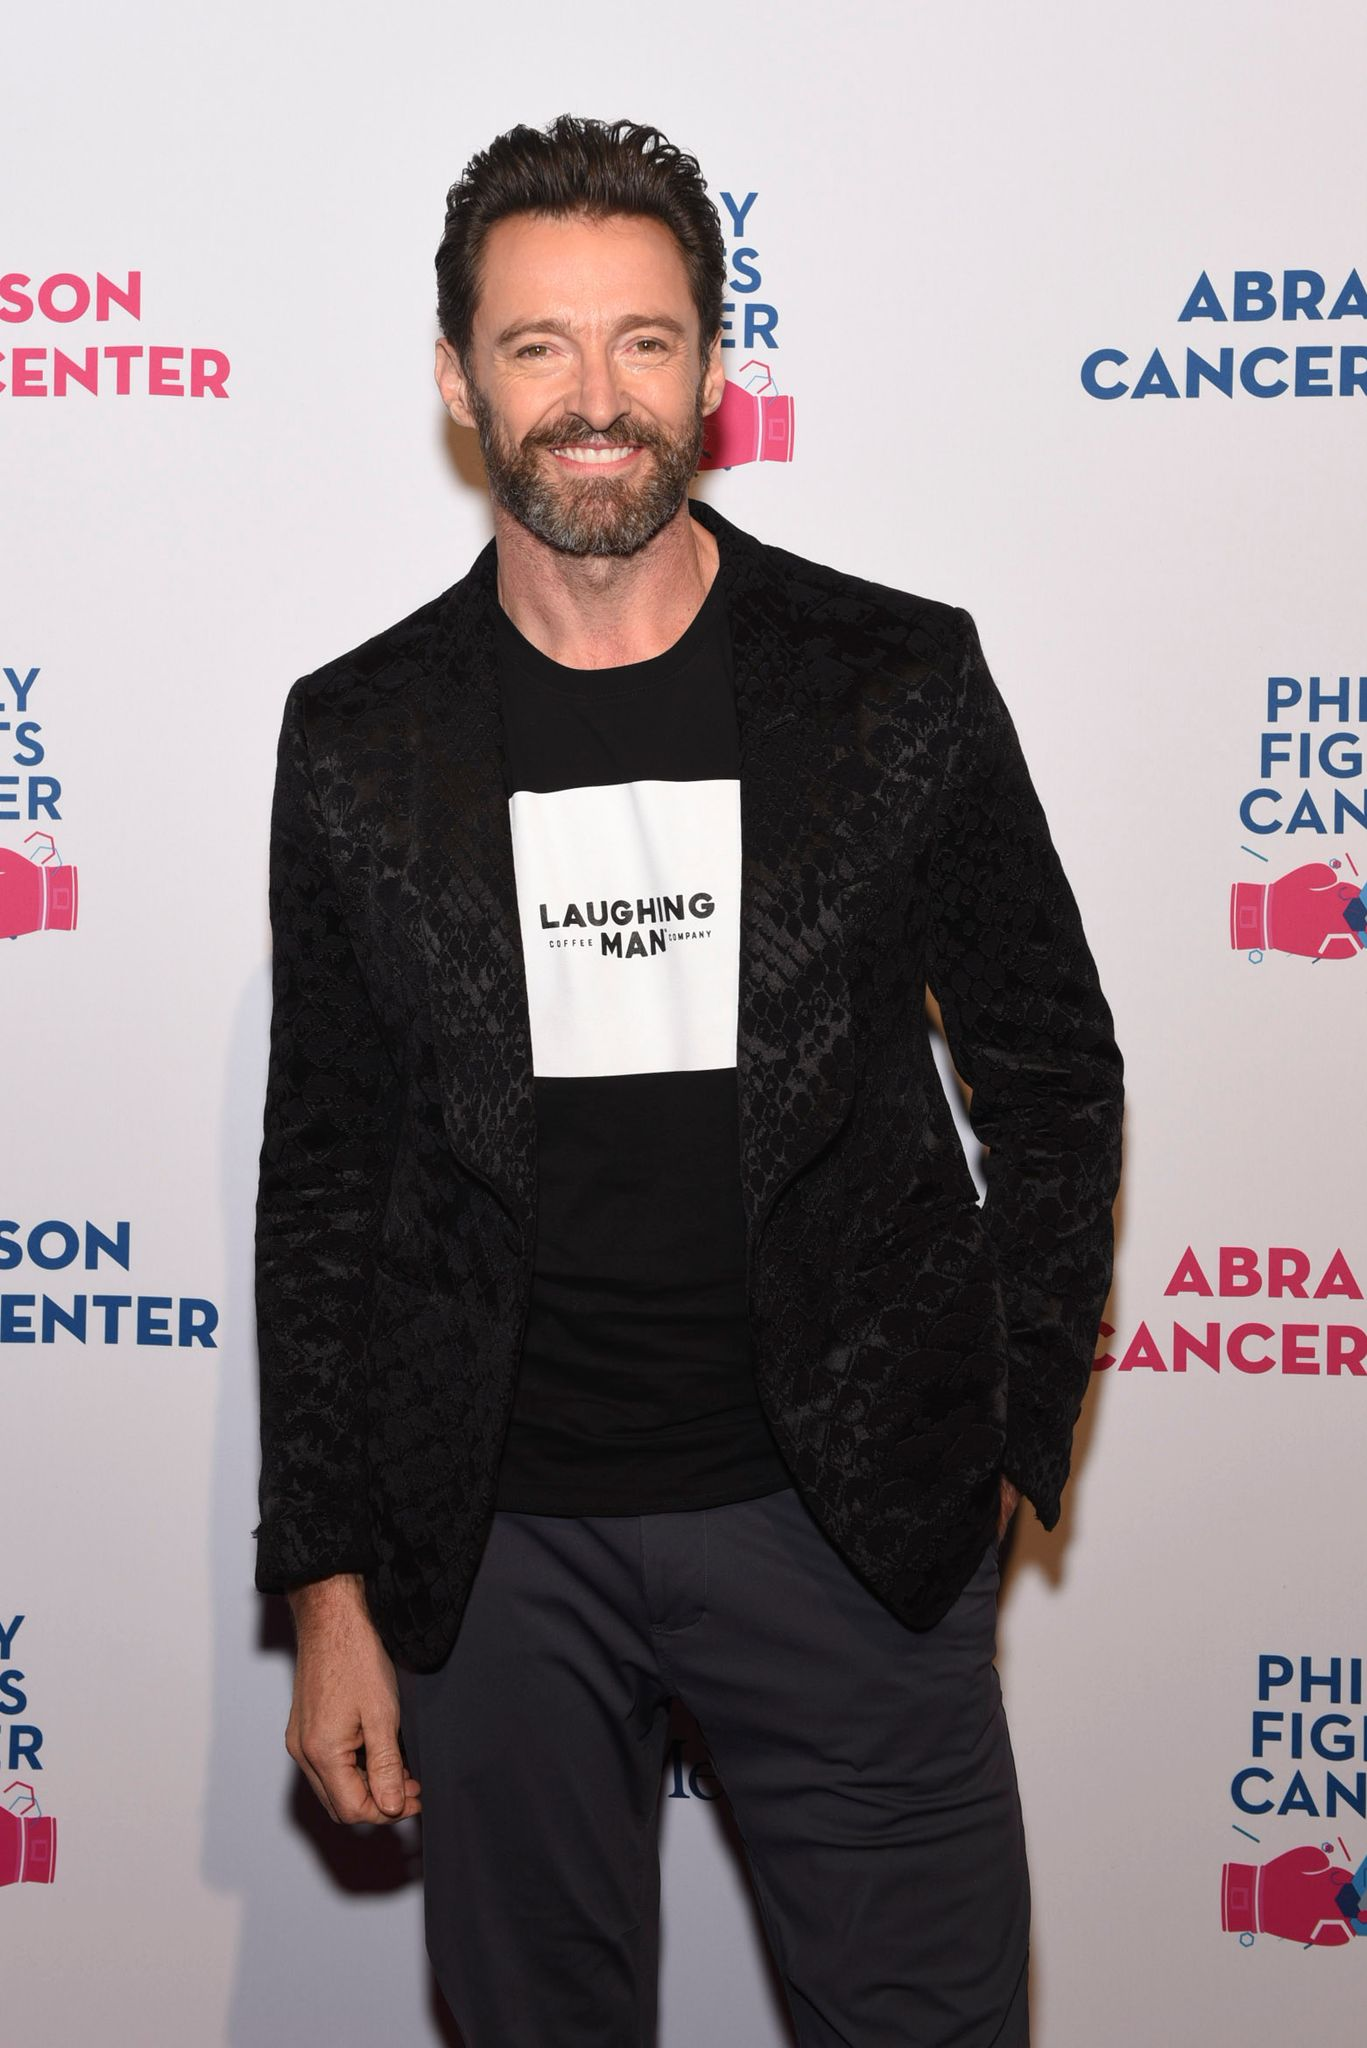 Hugh Jackman at the Philly Fights Cancer: Round 5 Event benefiting Penn Medicine's Abramson Cancer Center at the Philadelphia Navy Yard on October 26, 2019 in Philadelphia, Pennsylvania | Photo: Getty Images